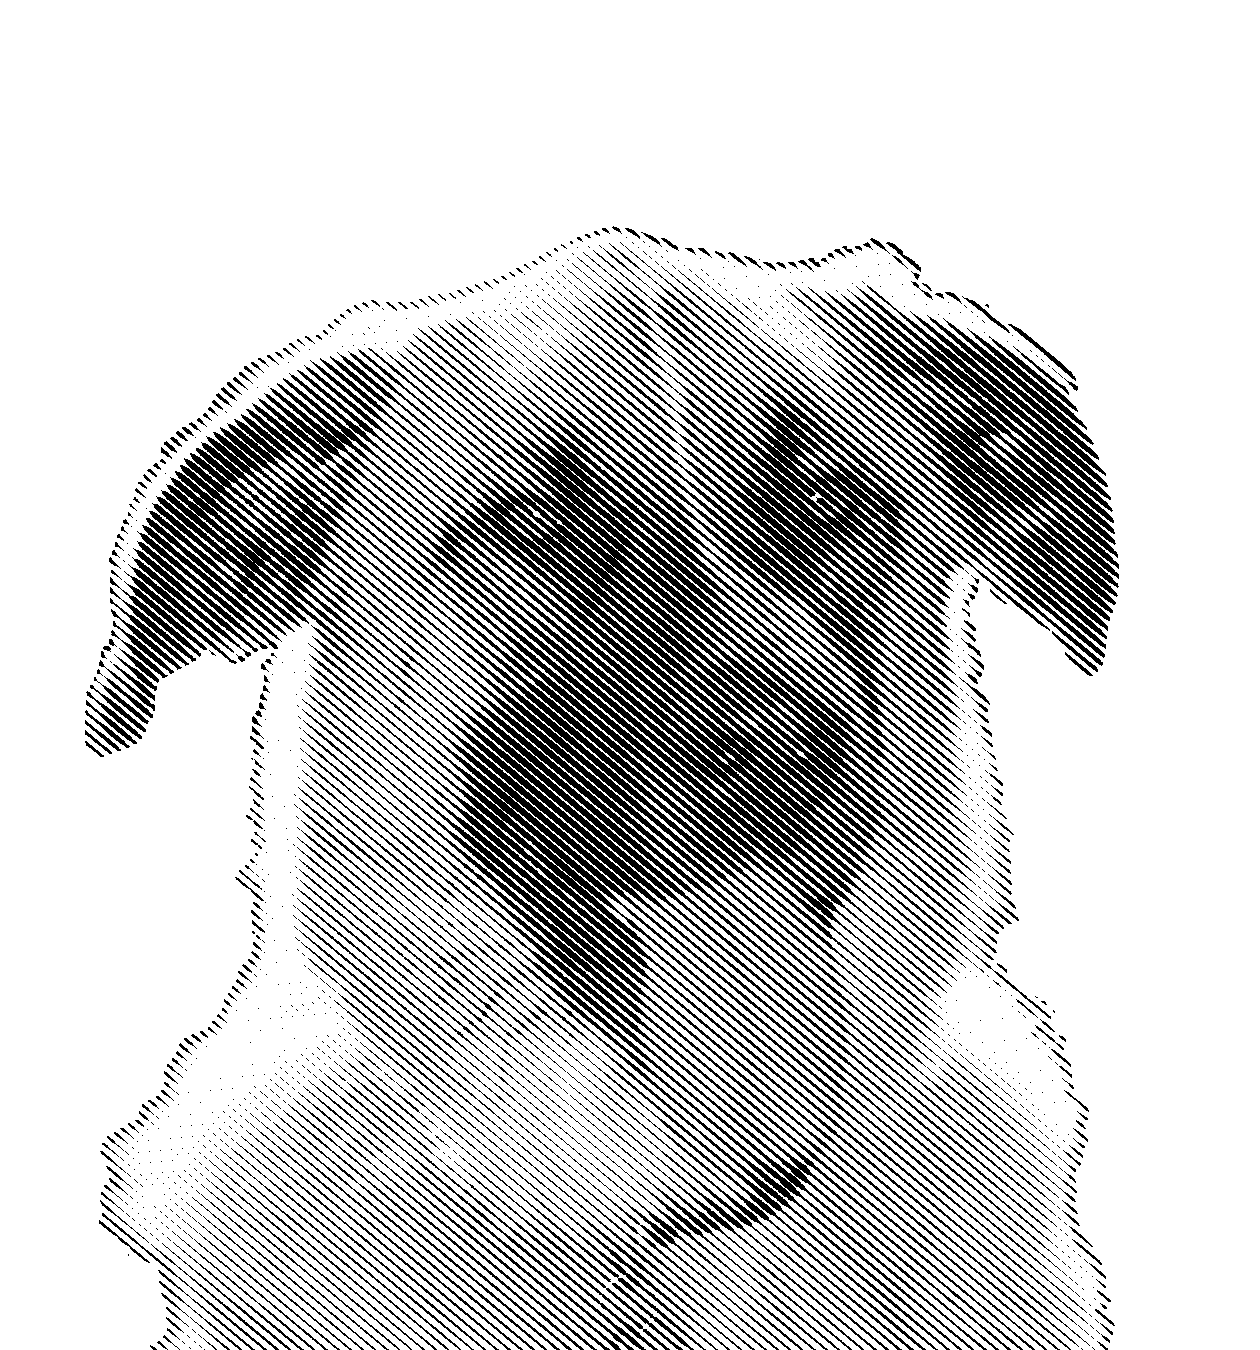 BodhiHalftone.png